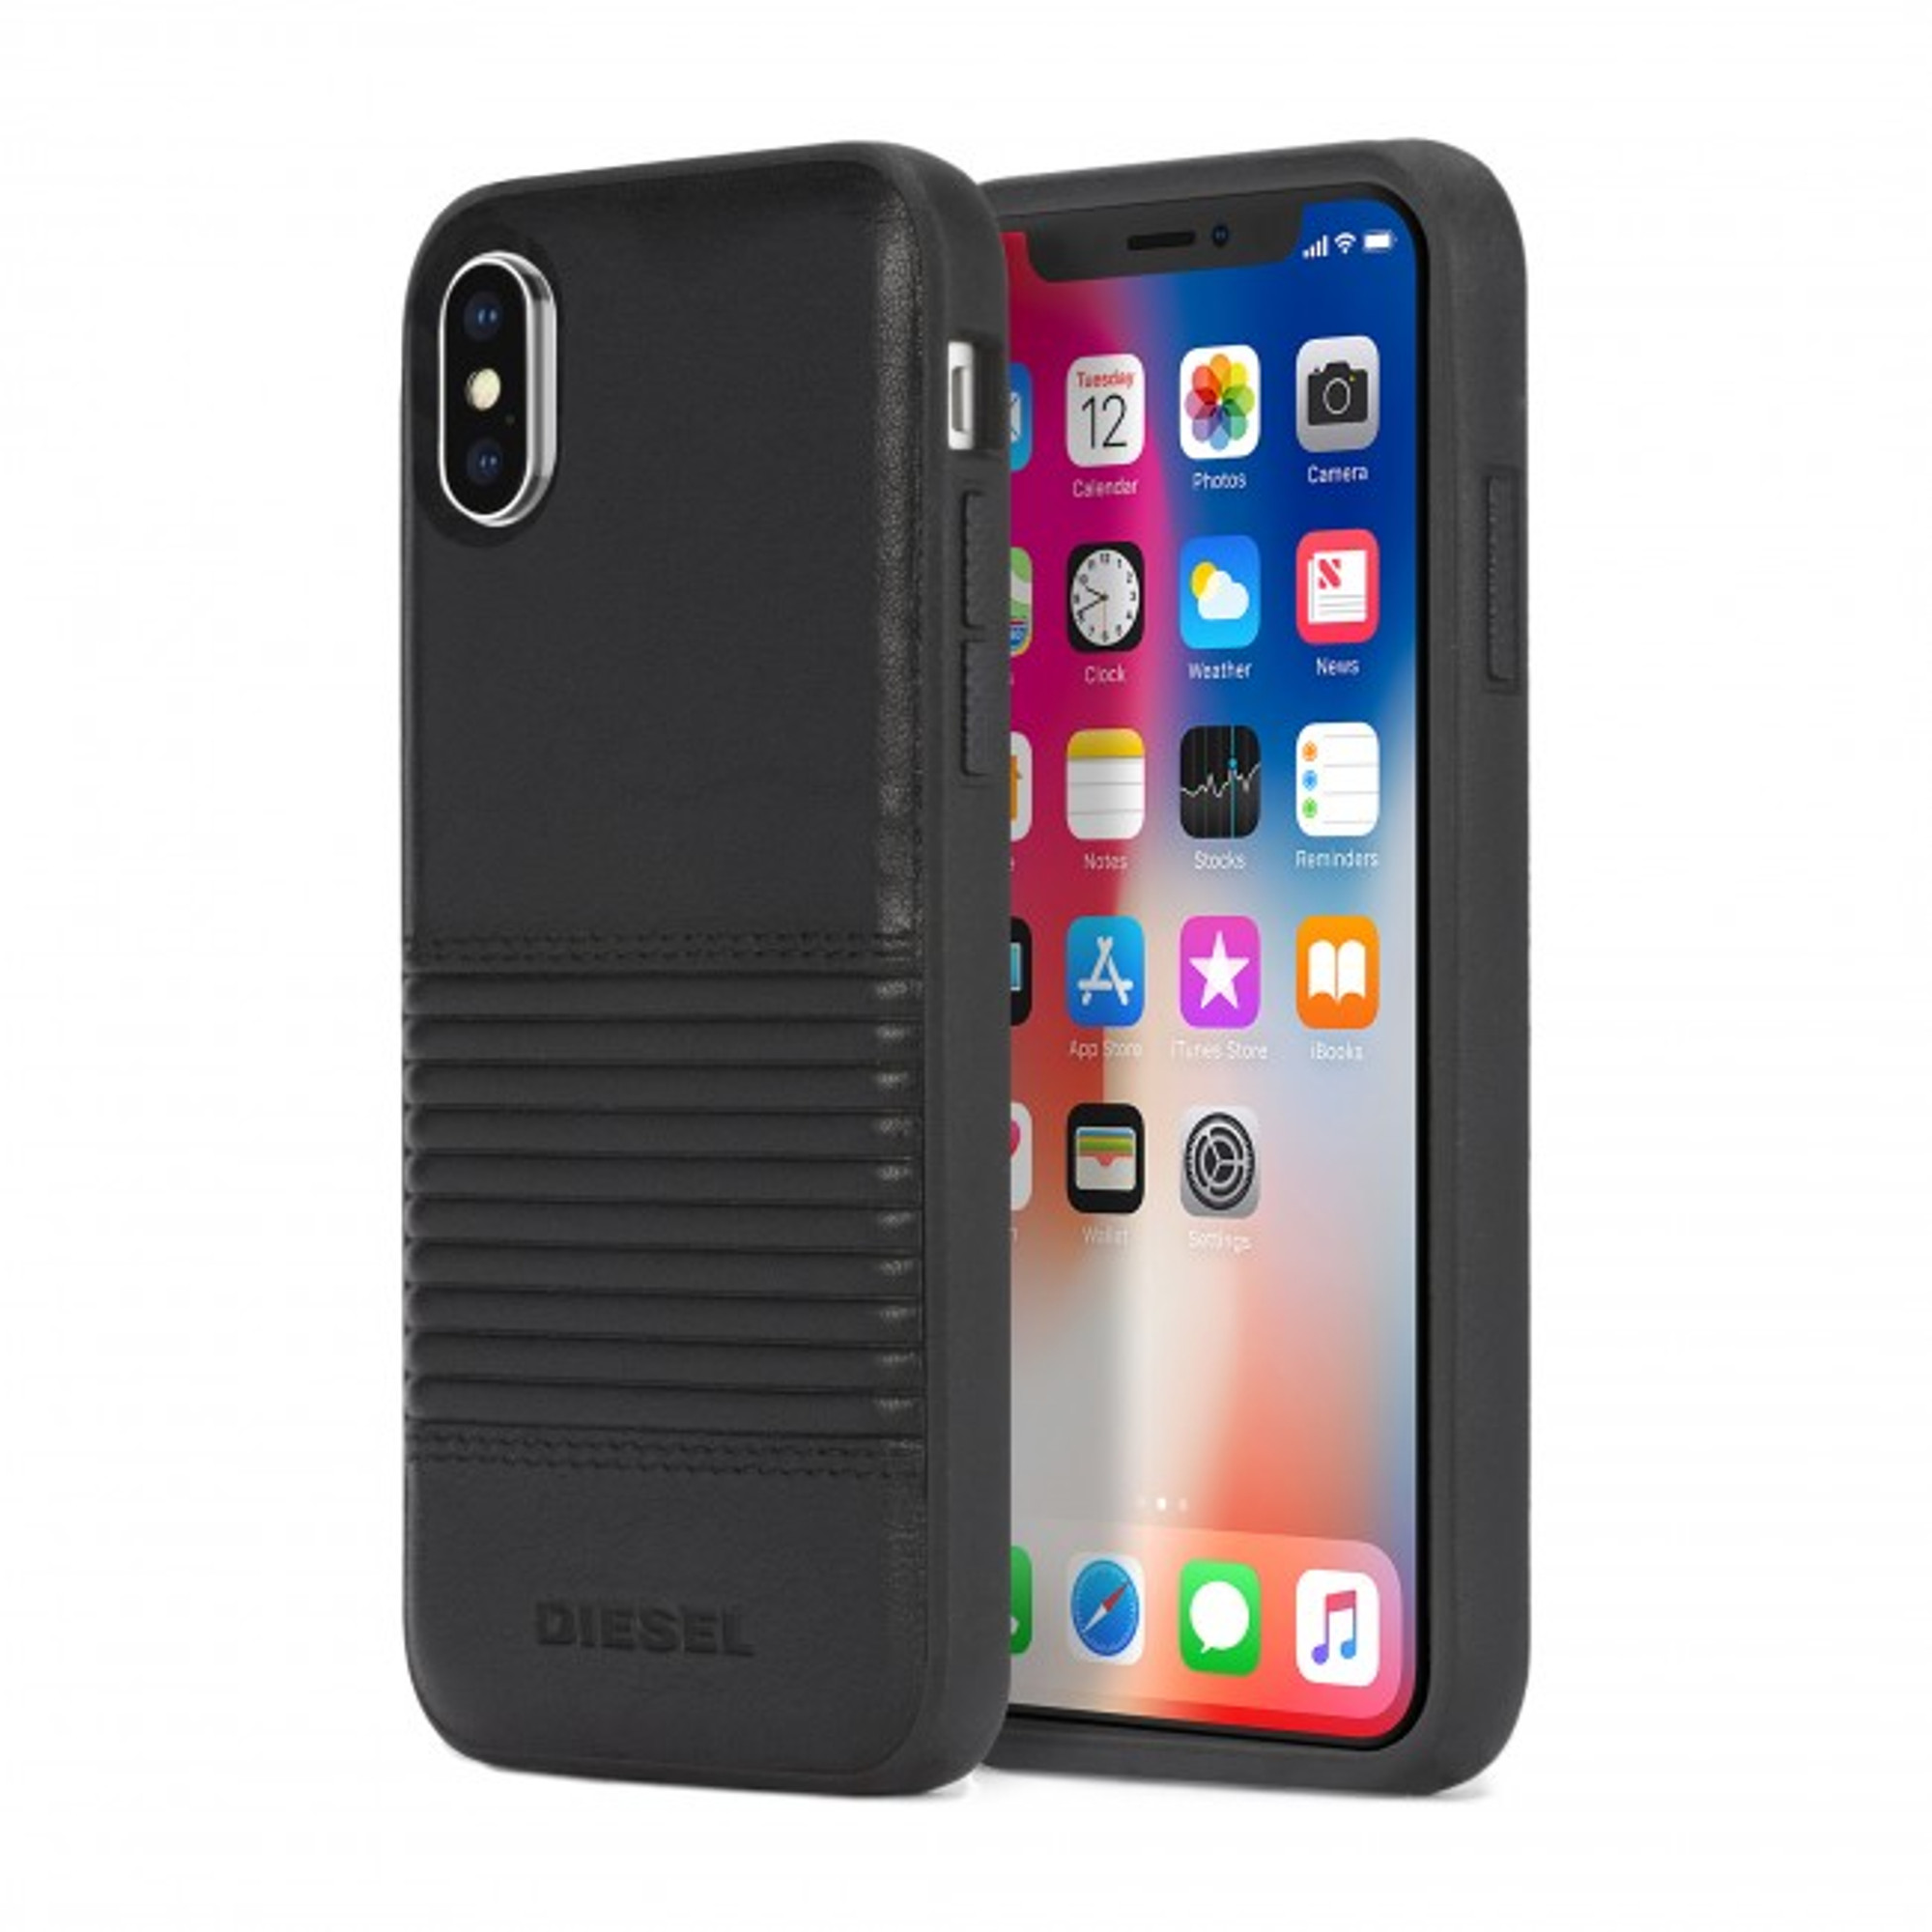 100% authentic 570d3 9ea91 Diesel Leather Co-Mold Case for iPhone X - Black Lined Leather